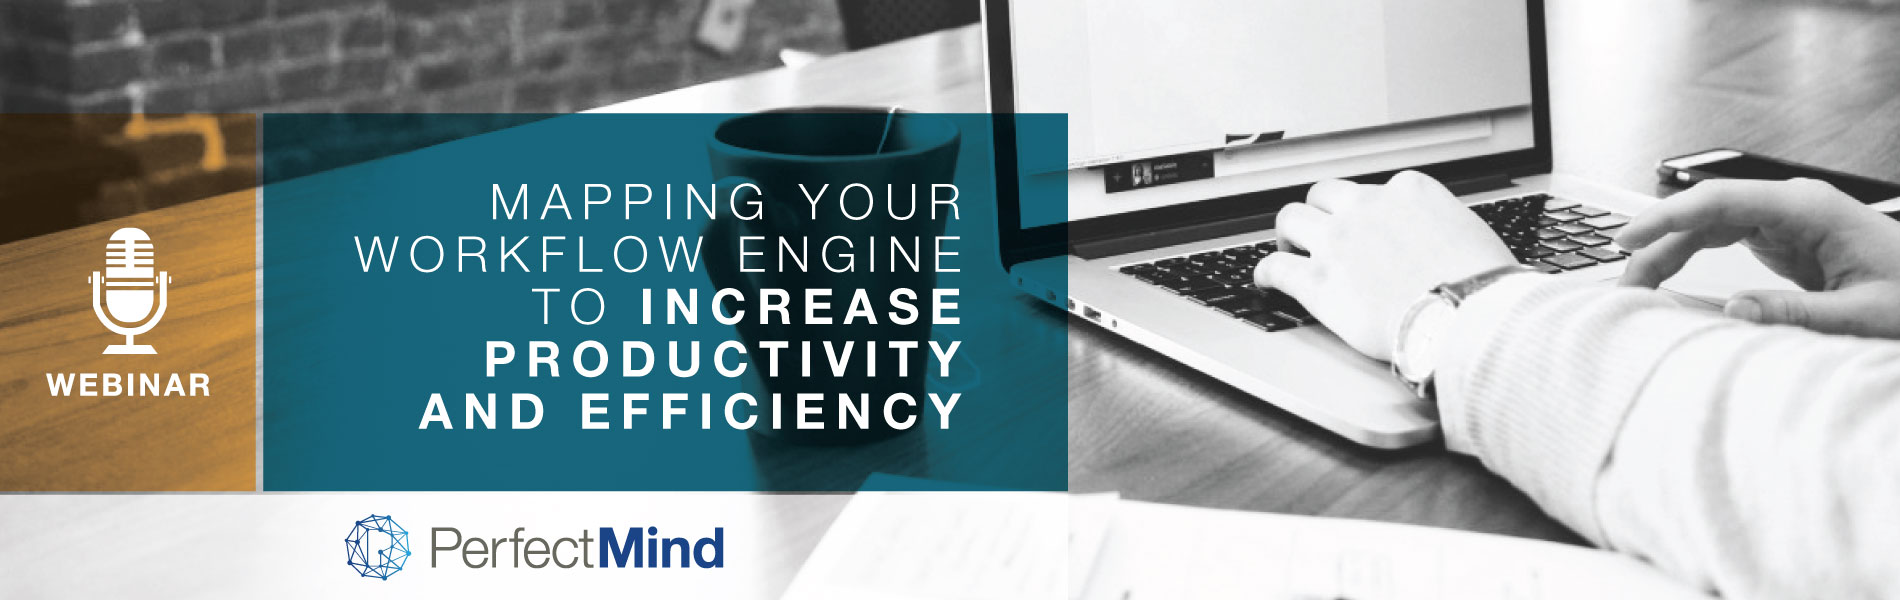 [Webinar] Mapping your Workflow Engine to Increase Productivity and Efficiency | PerfectMind